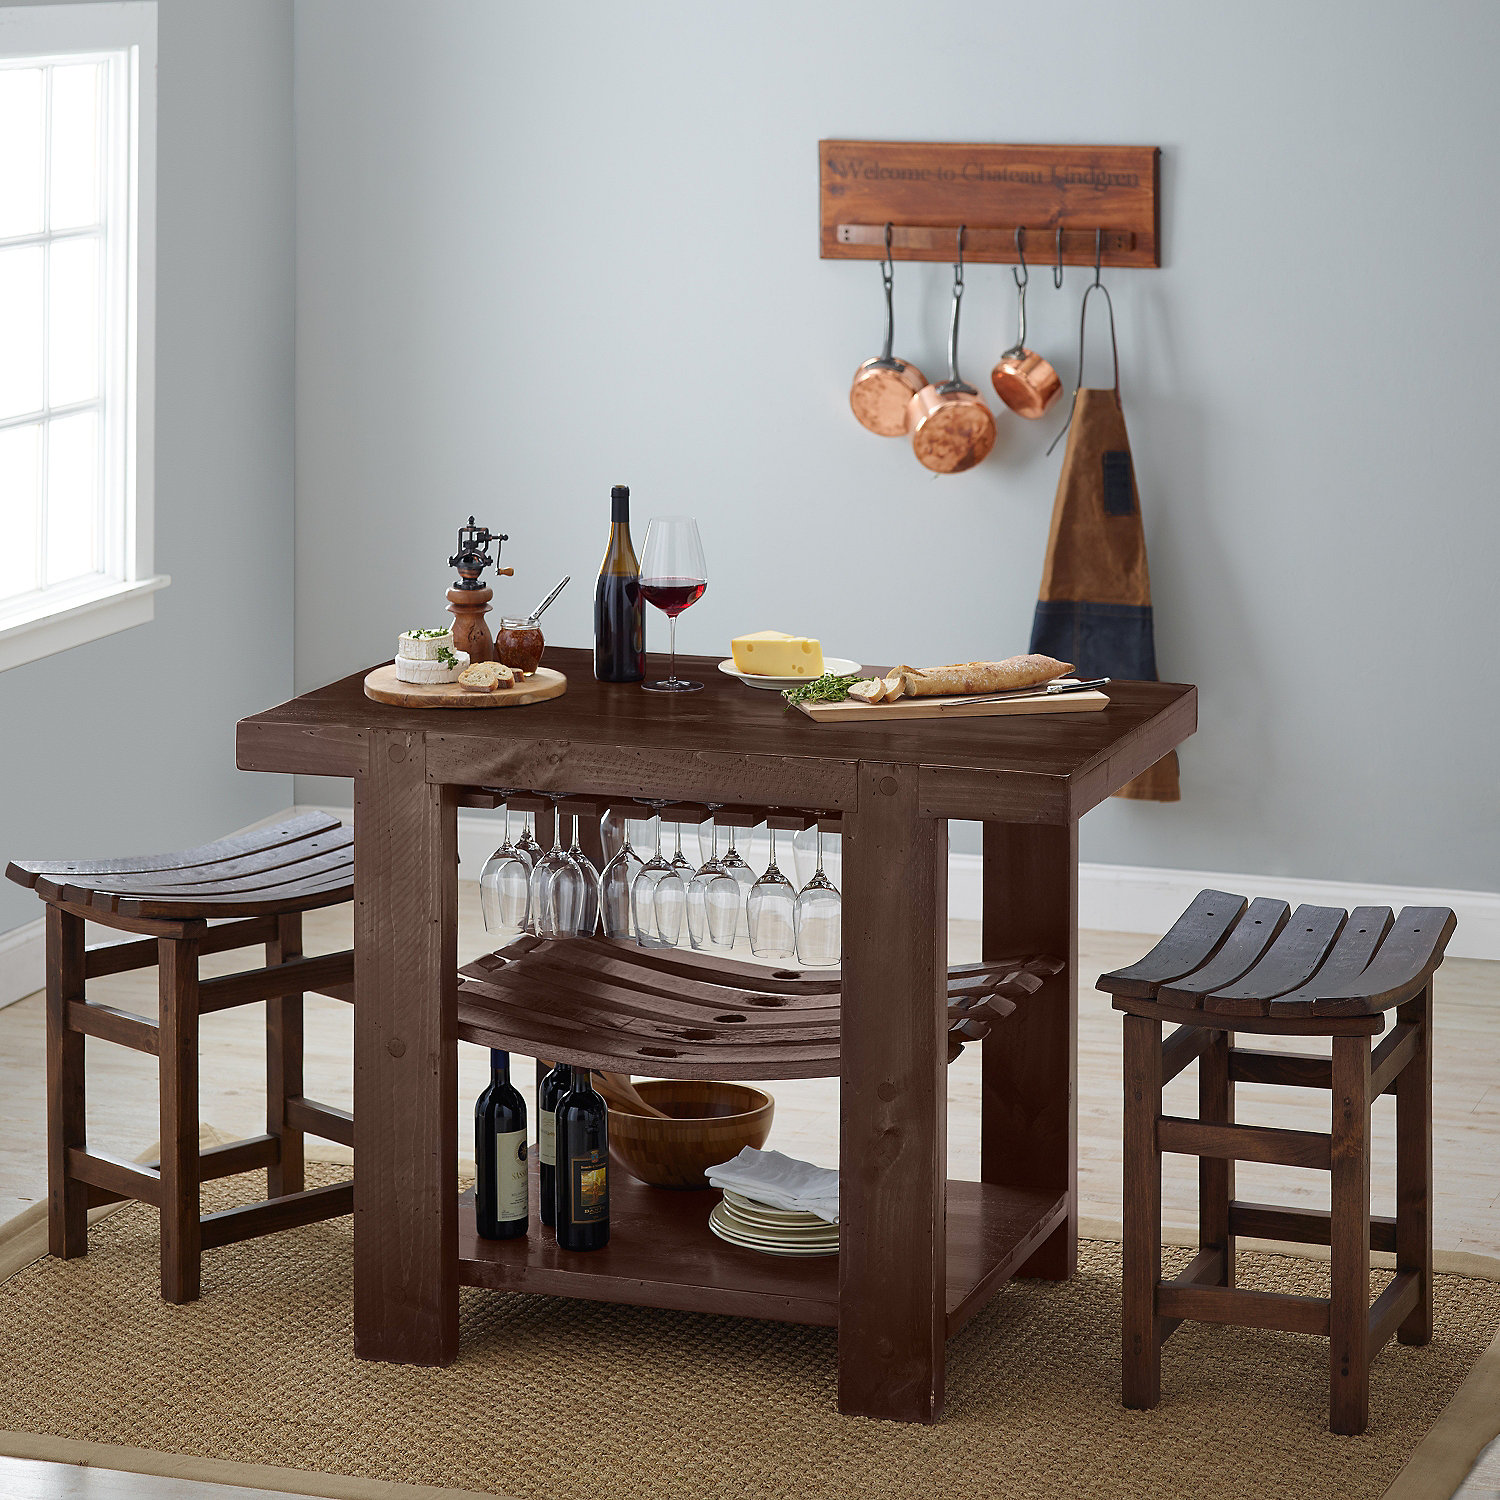 Napa Valley Kitchen Island and Stool Set (Caramel Finish) - Wine ...